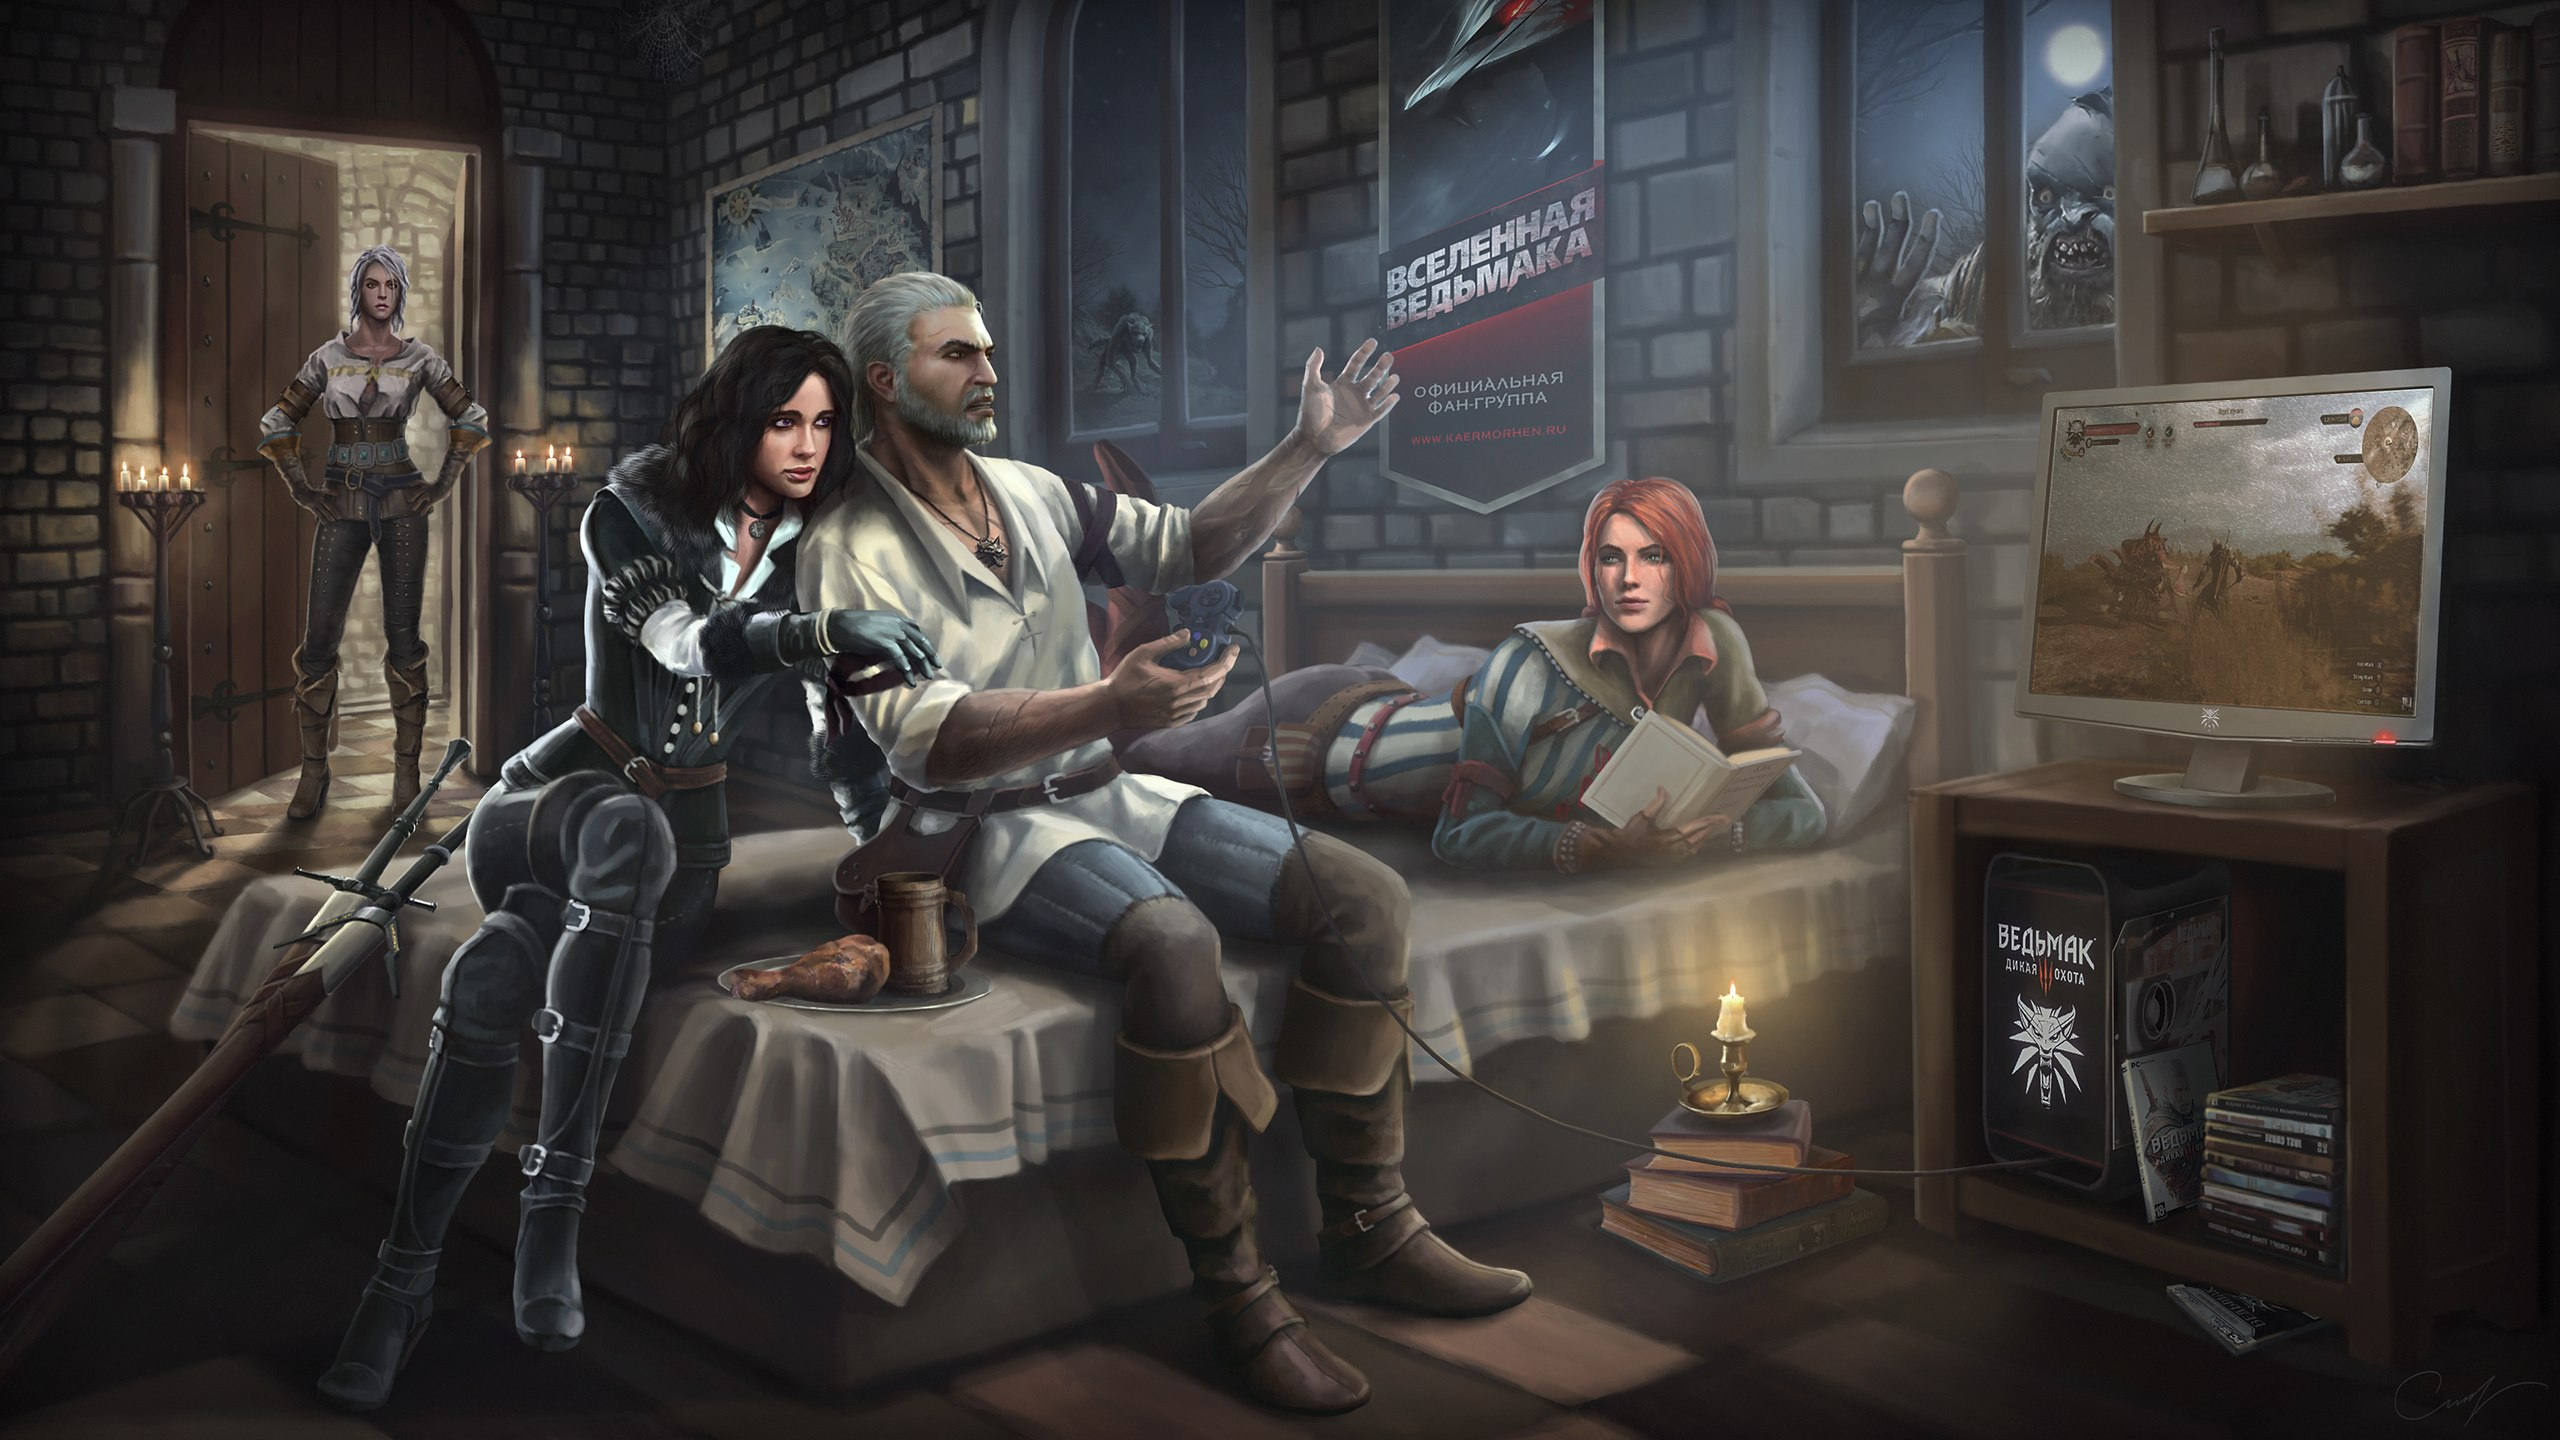 Witcher 3: Wild Hunt - Witcher 3: Wild Hunt, the Арт